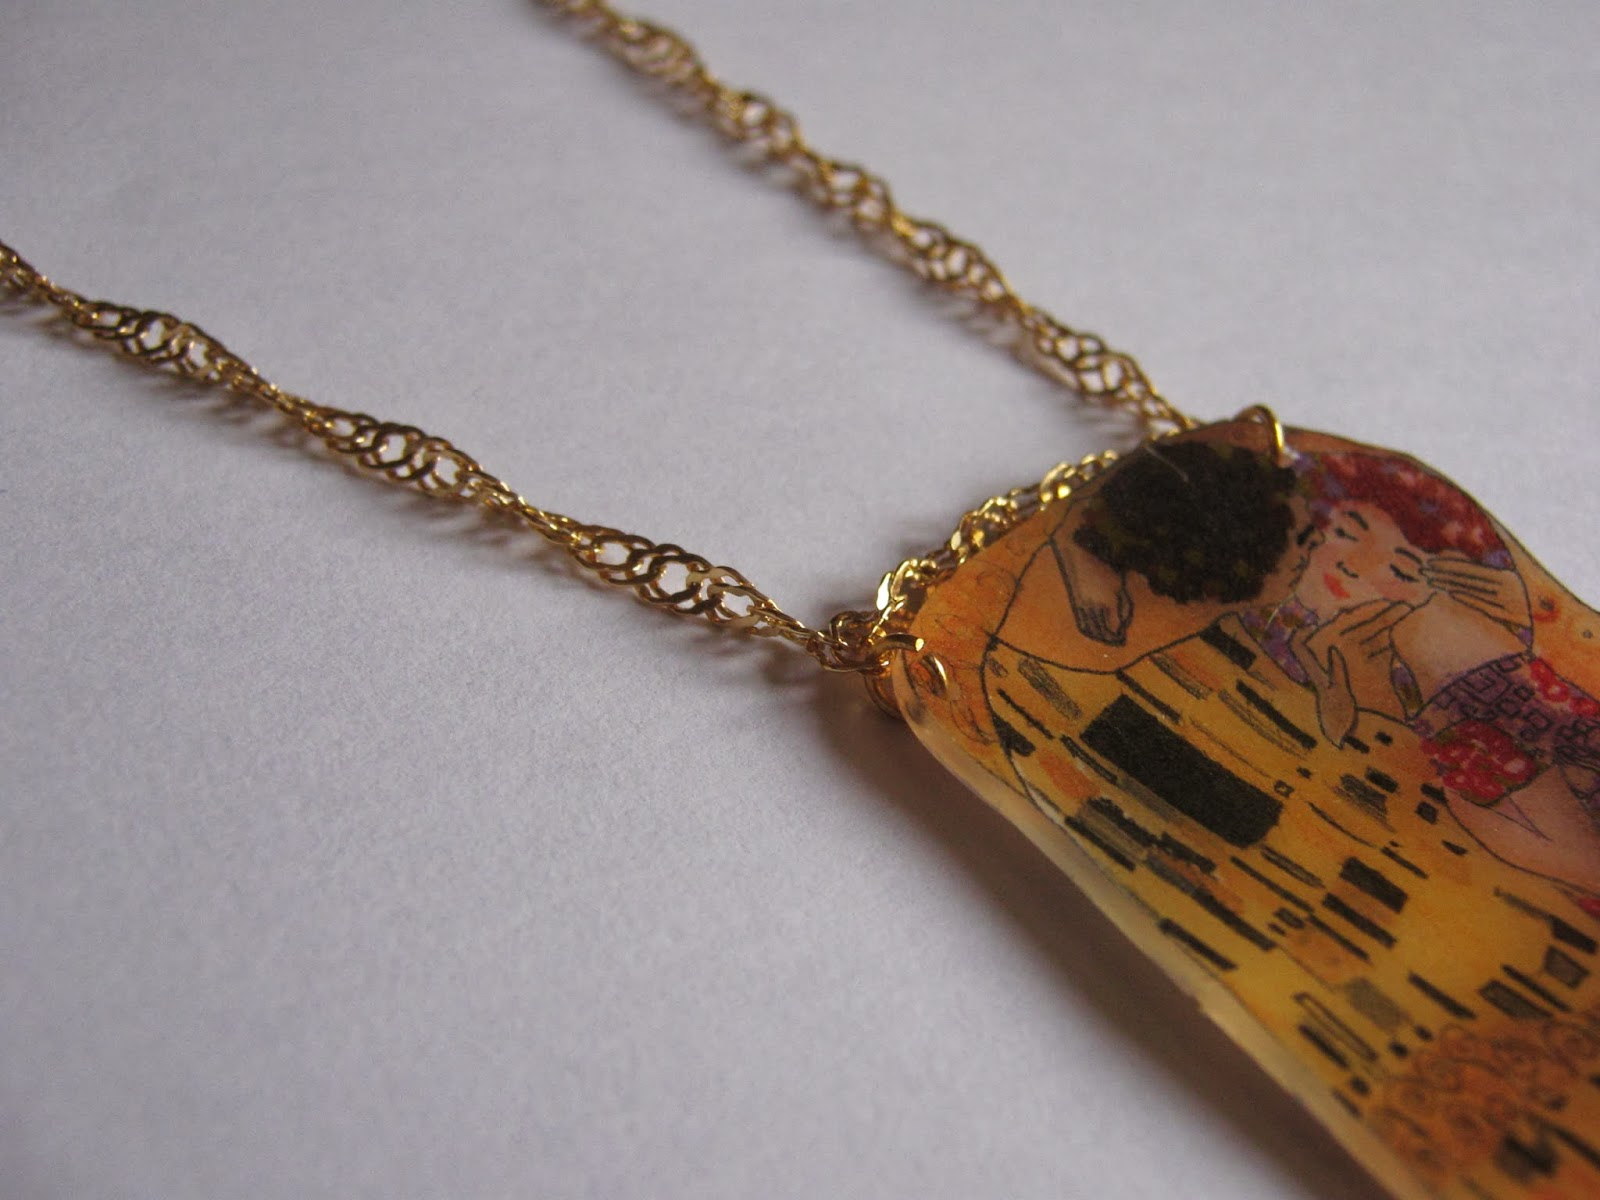 Gustav Klimt - The Kiss necklace DIY